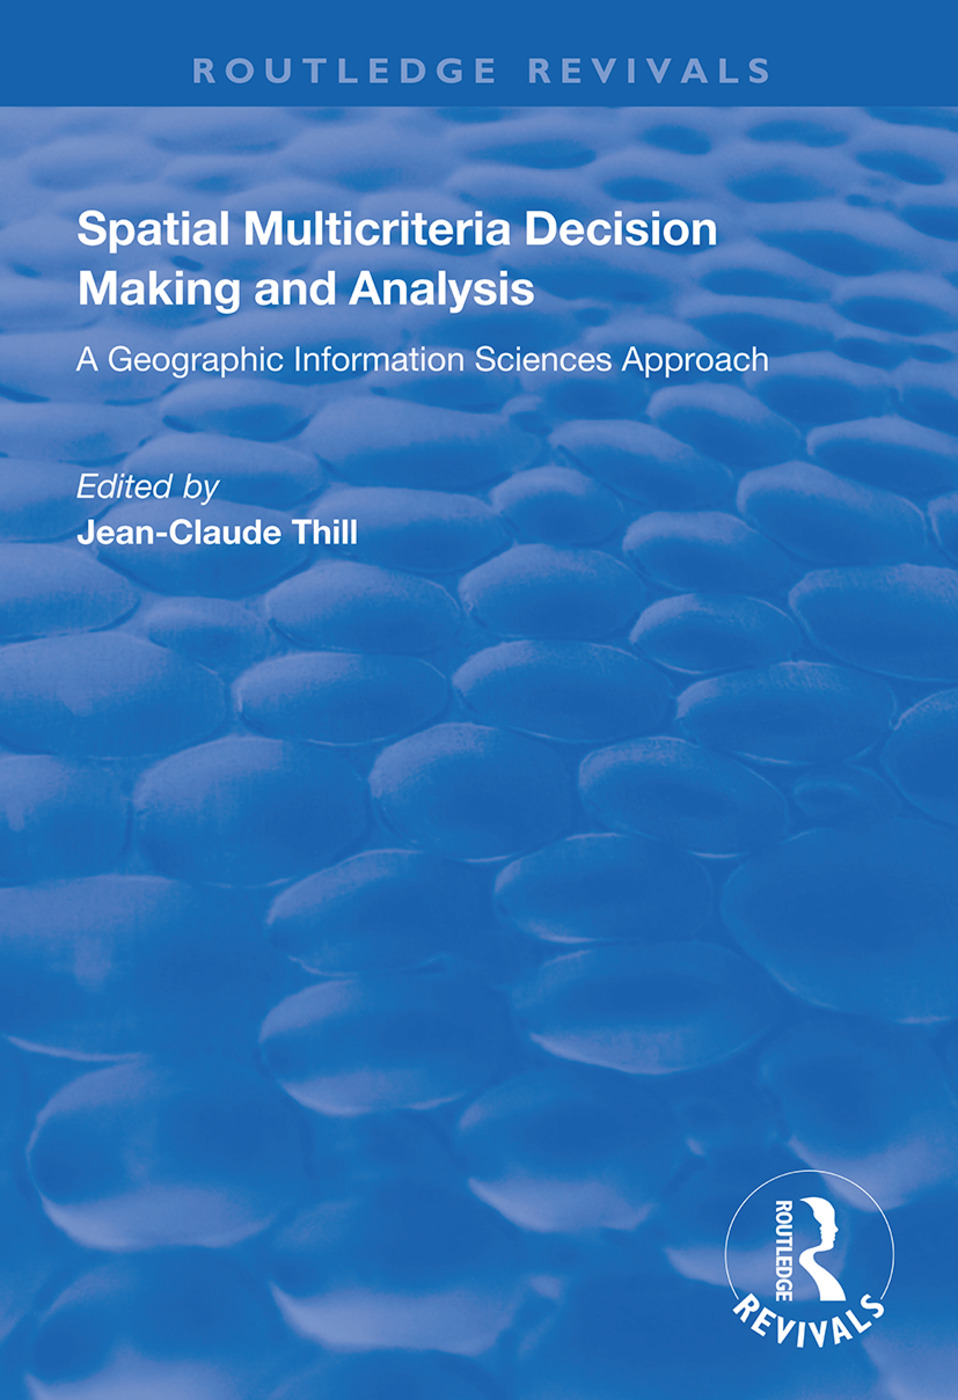 Spatial Multicriteria Decision Making and Analysis: A Geographic Information Sciences Approach book cover